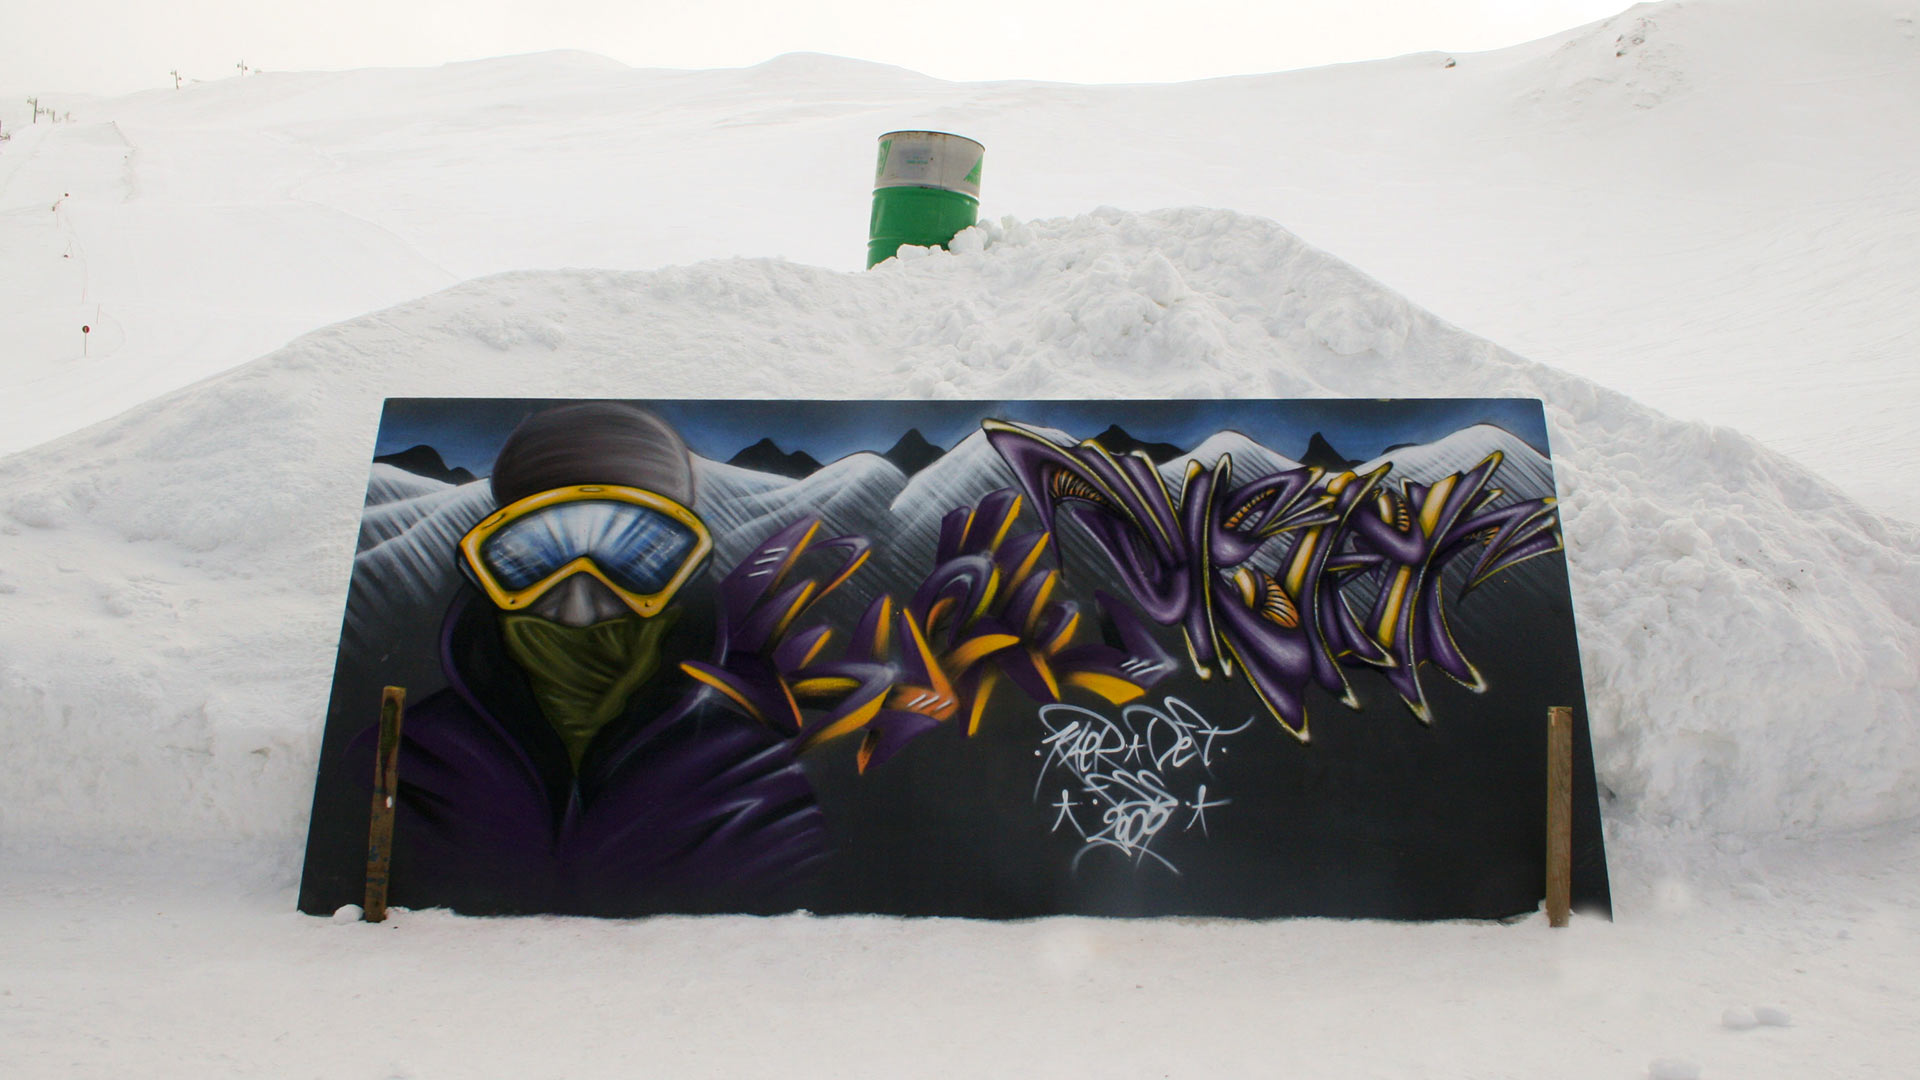 FSS - Massif du Sancy - Graffiti